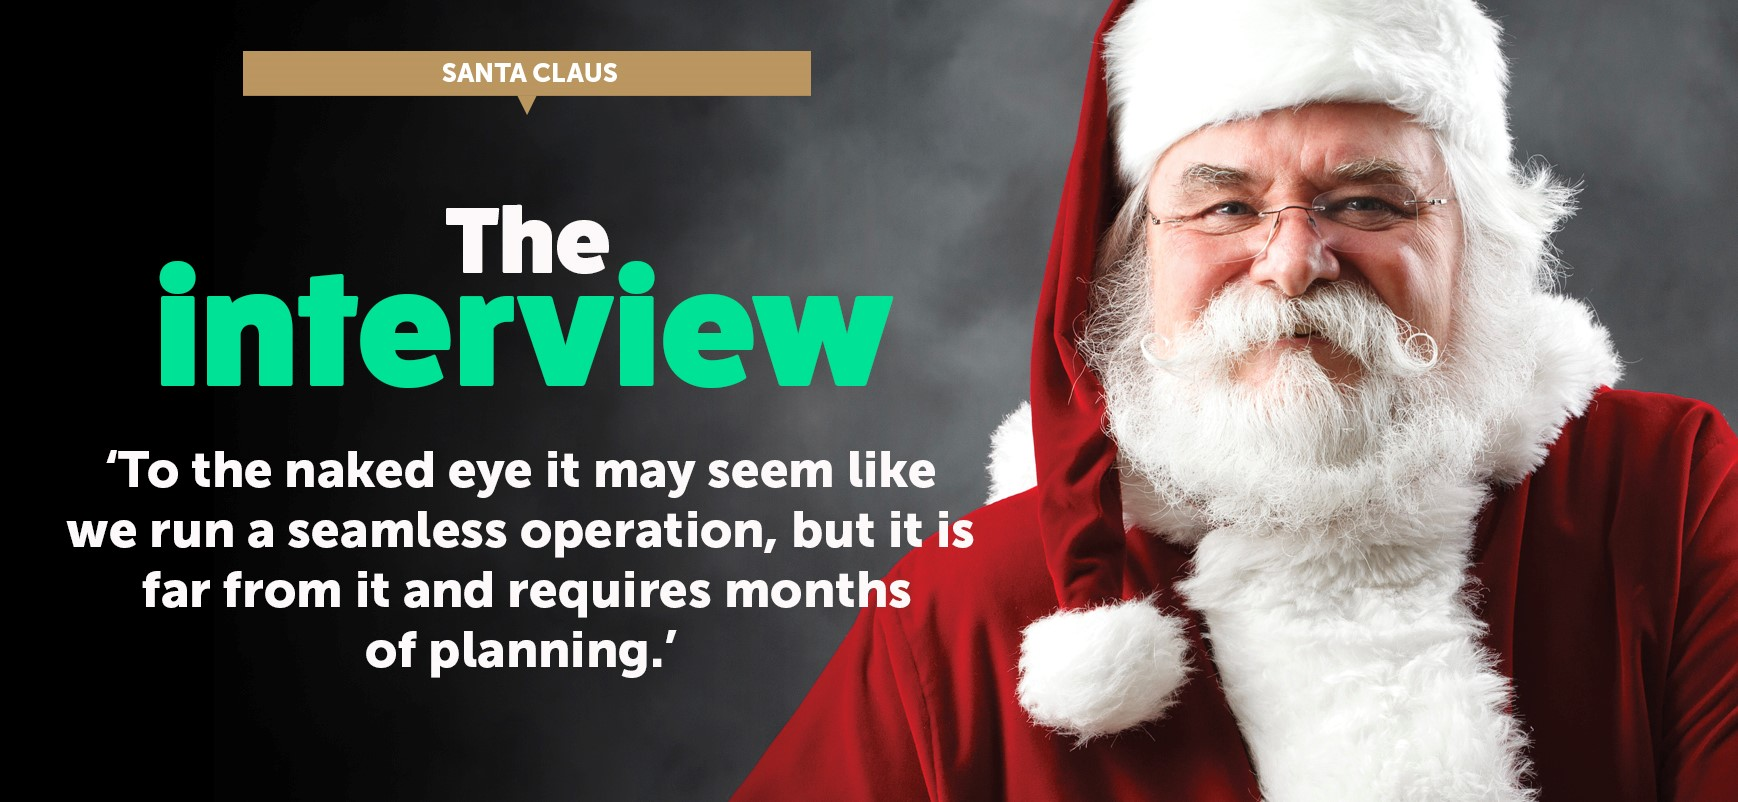 imgThe Interview _ Santa Claus